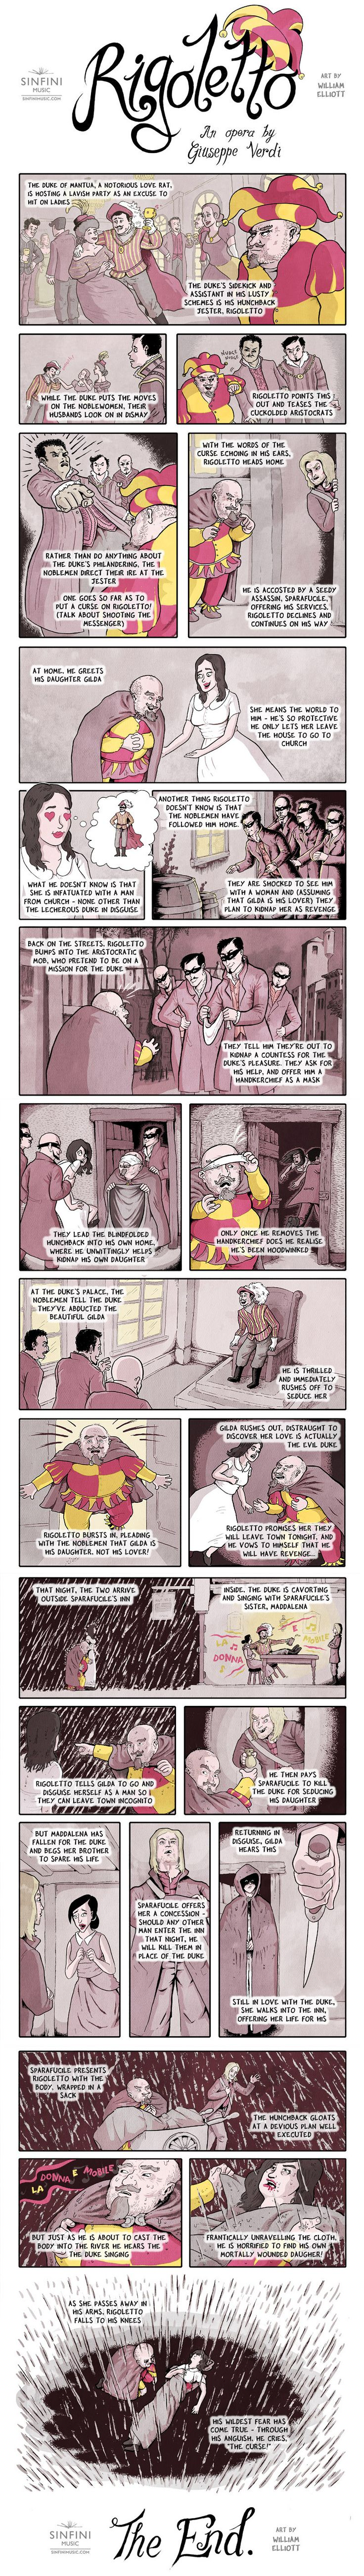 Opera Strip Verdi's Rigoletto | Series | Features | Sinfini Music - Cutting Through Classical